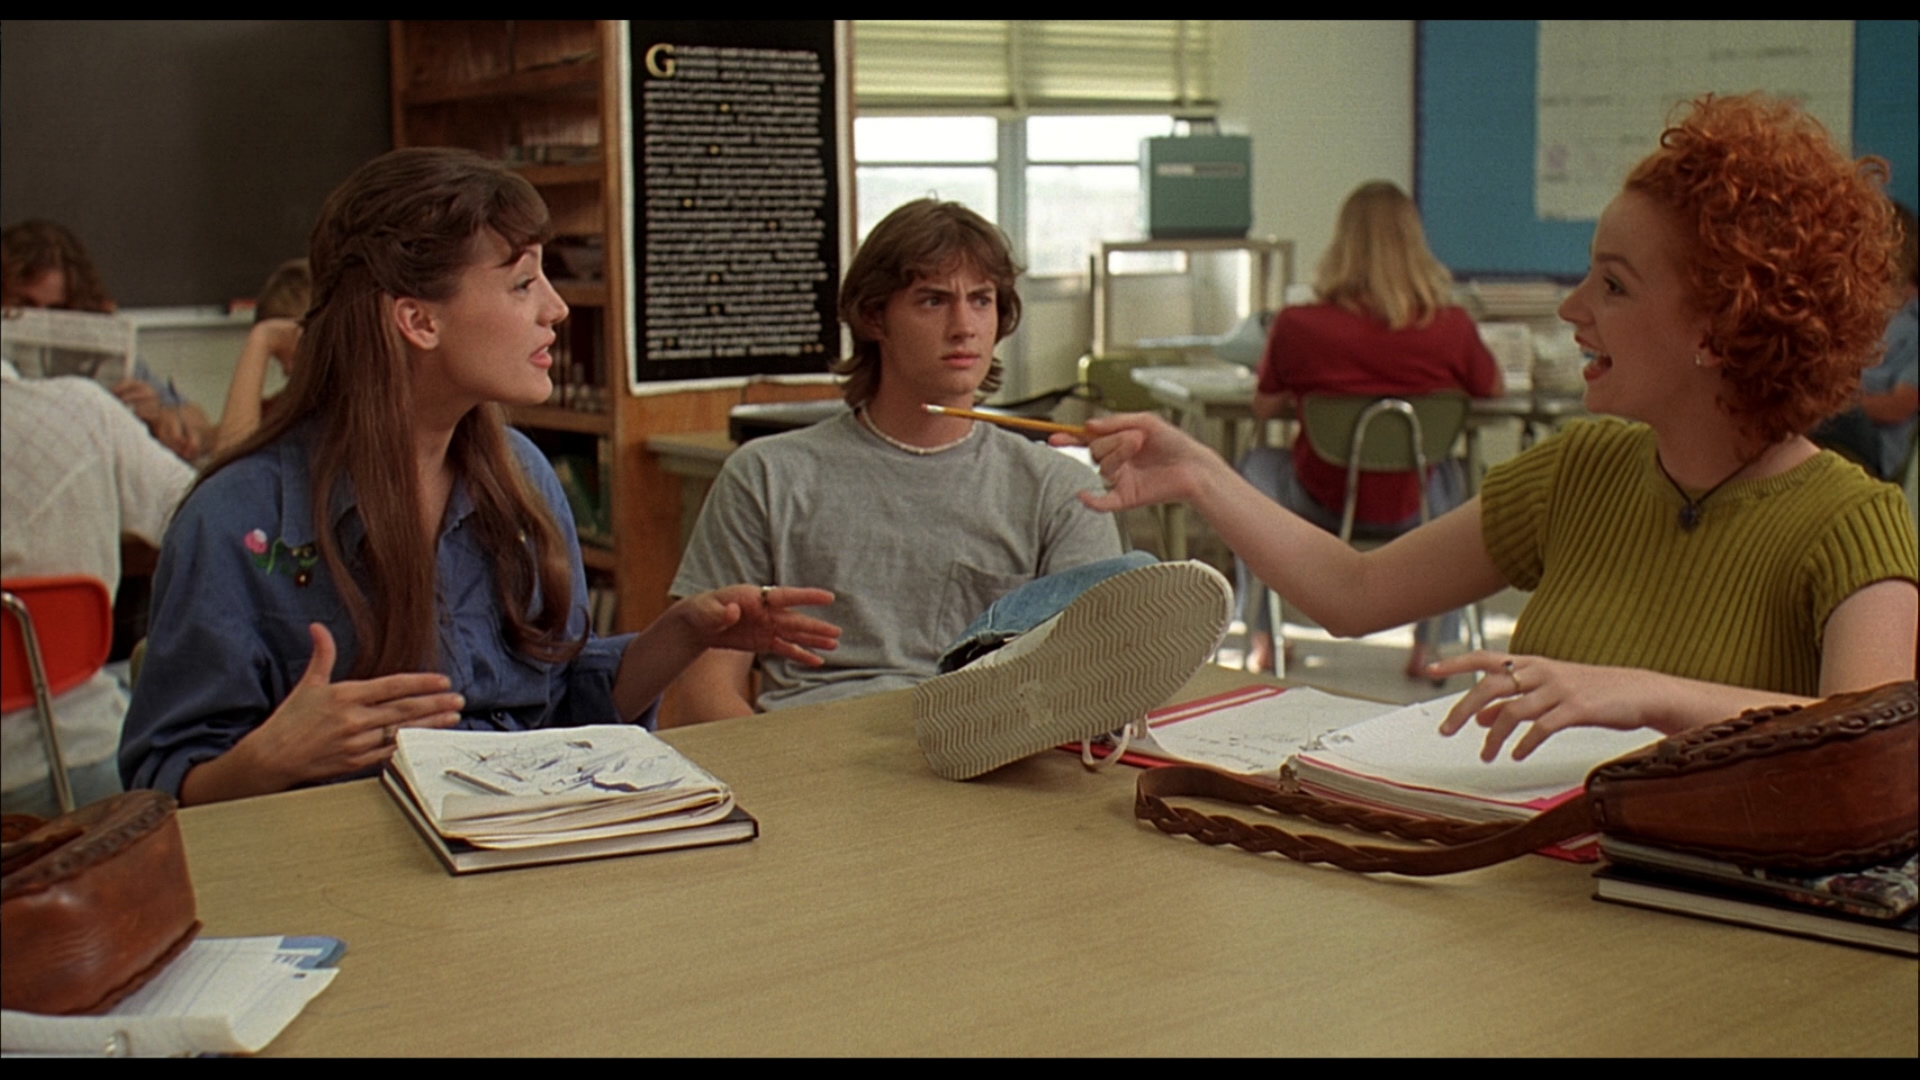 https://i1.wp.com/www.dvdbeaver.com/film3/blu-ray_reviews55/dazed_and_confused_blu-ray_/large/large_criterion_dazed_and_confused_blu-ray_2.jpg